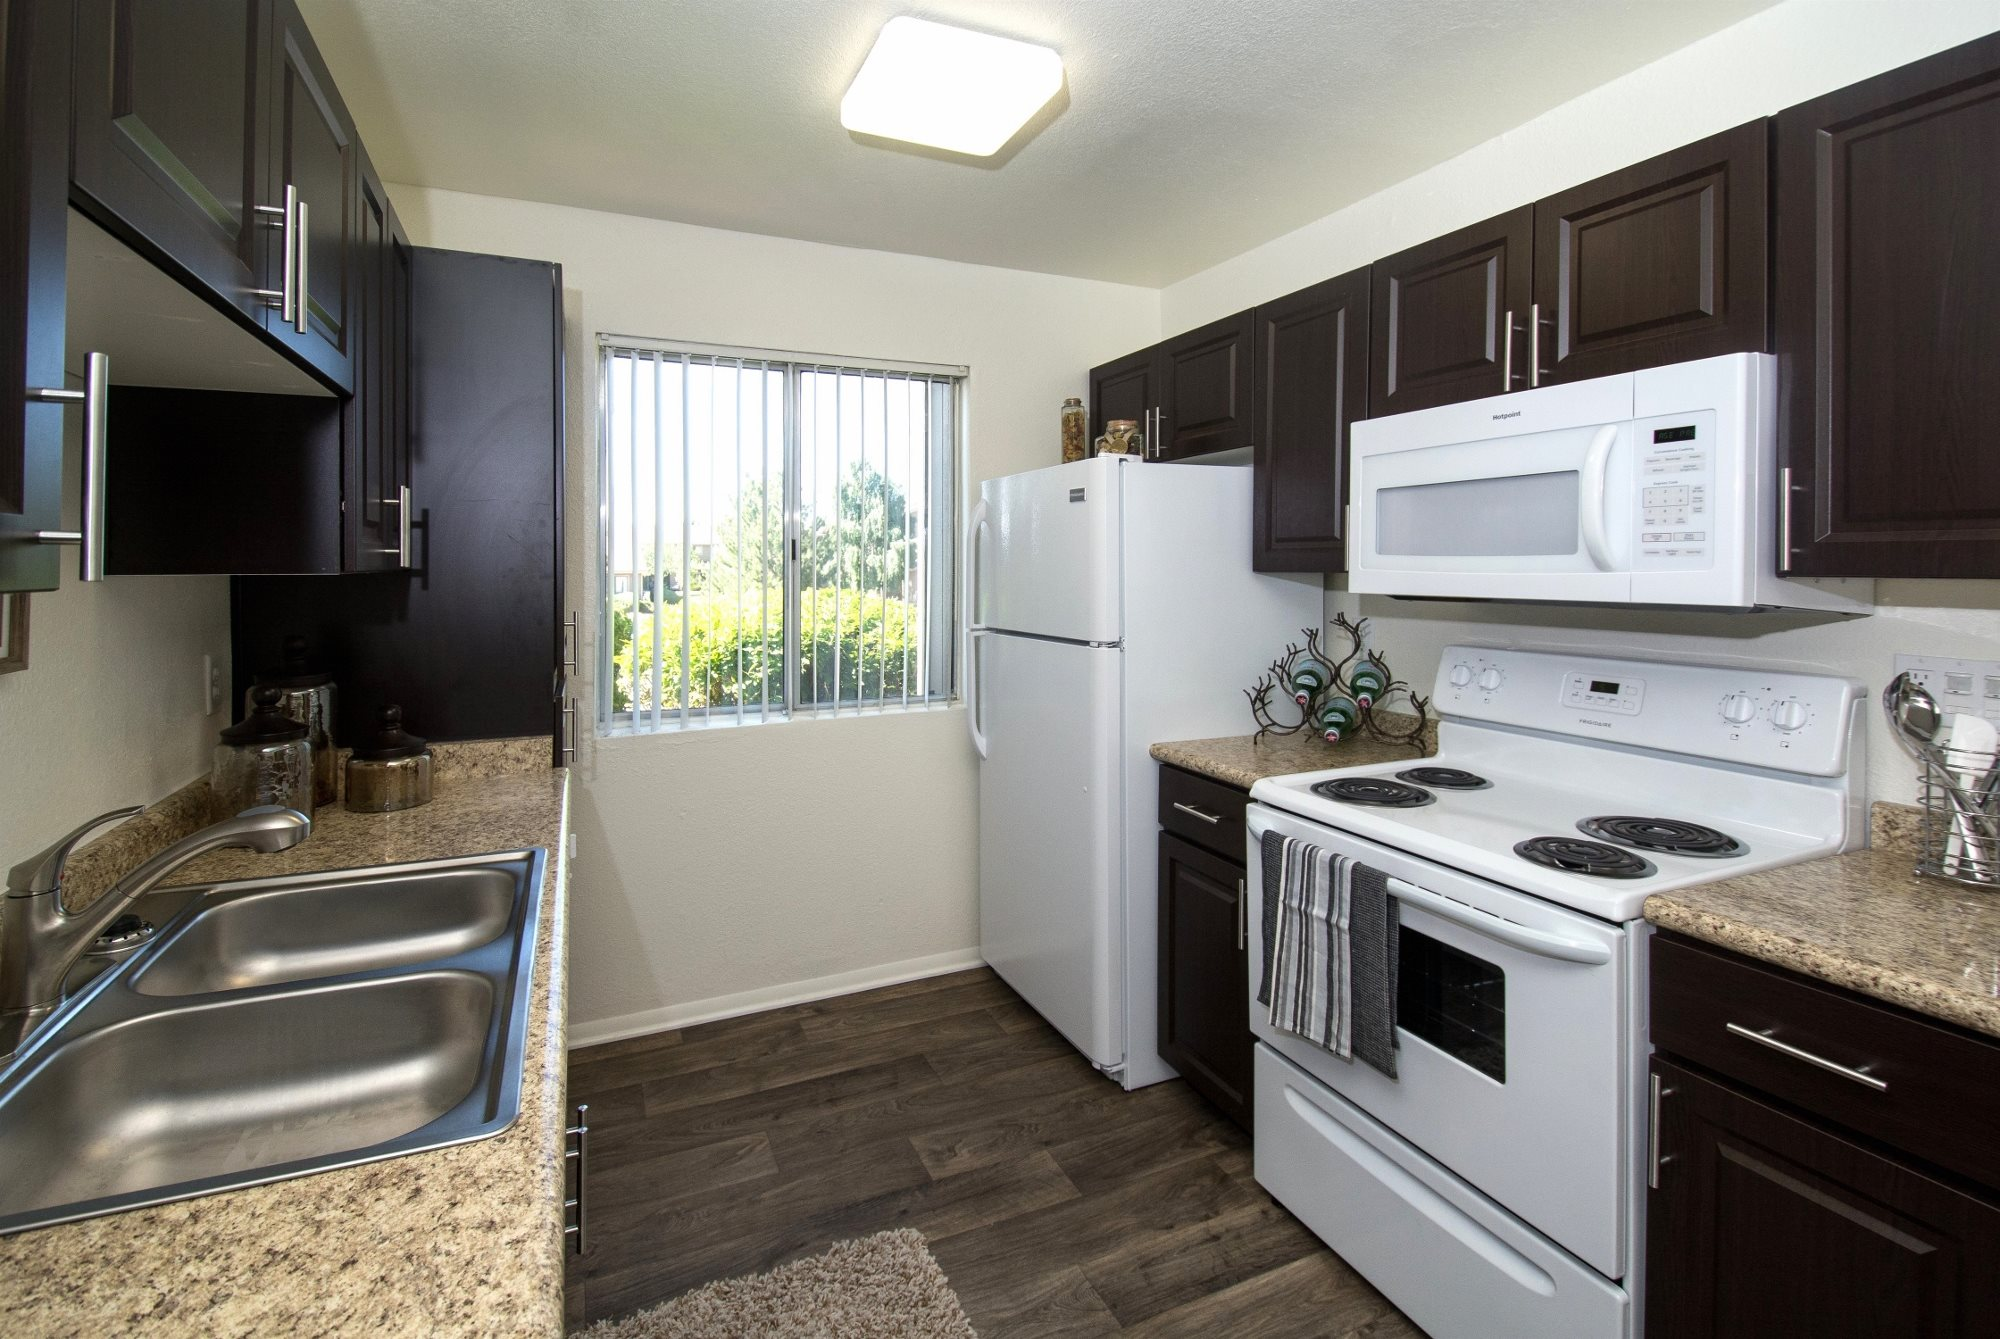 Country Club Terrace Apartments In Flagstaff Az 86004